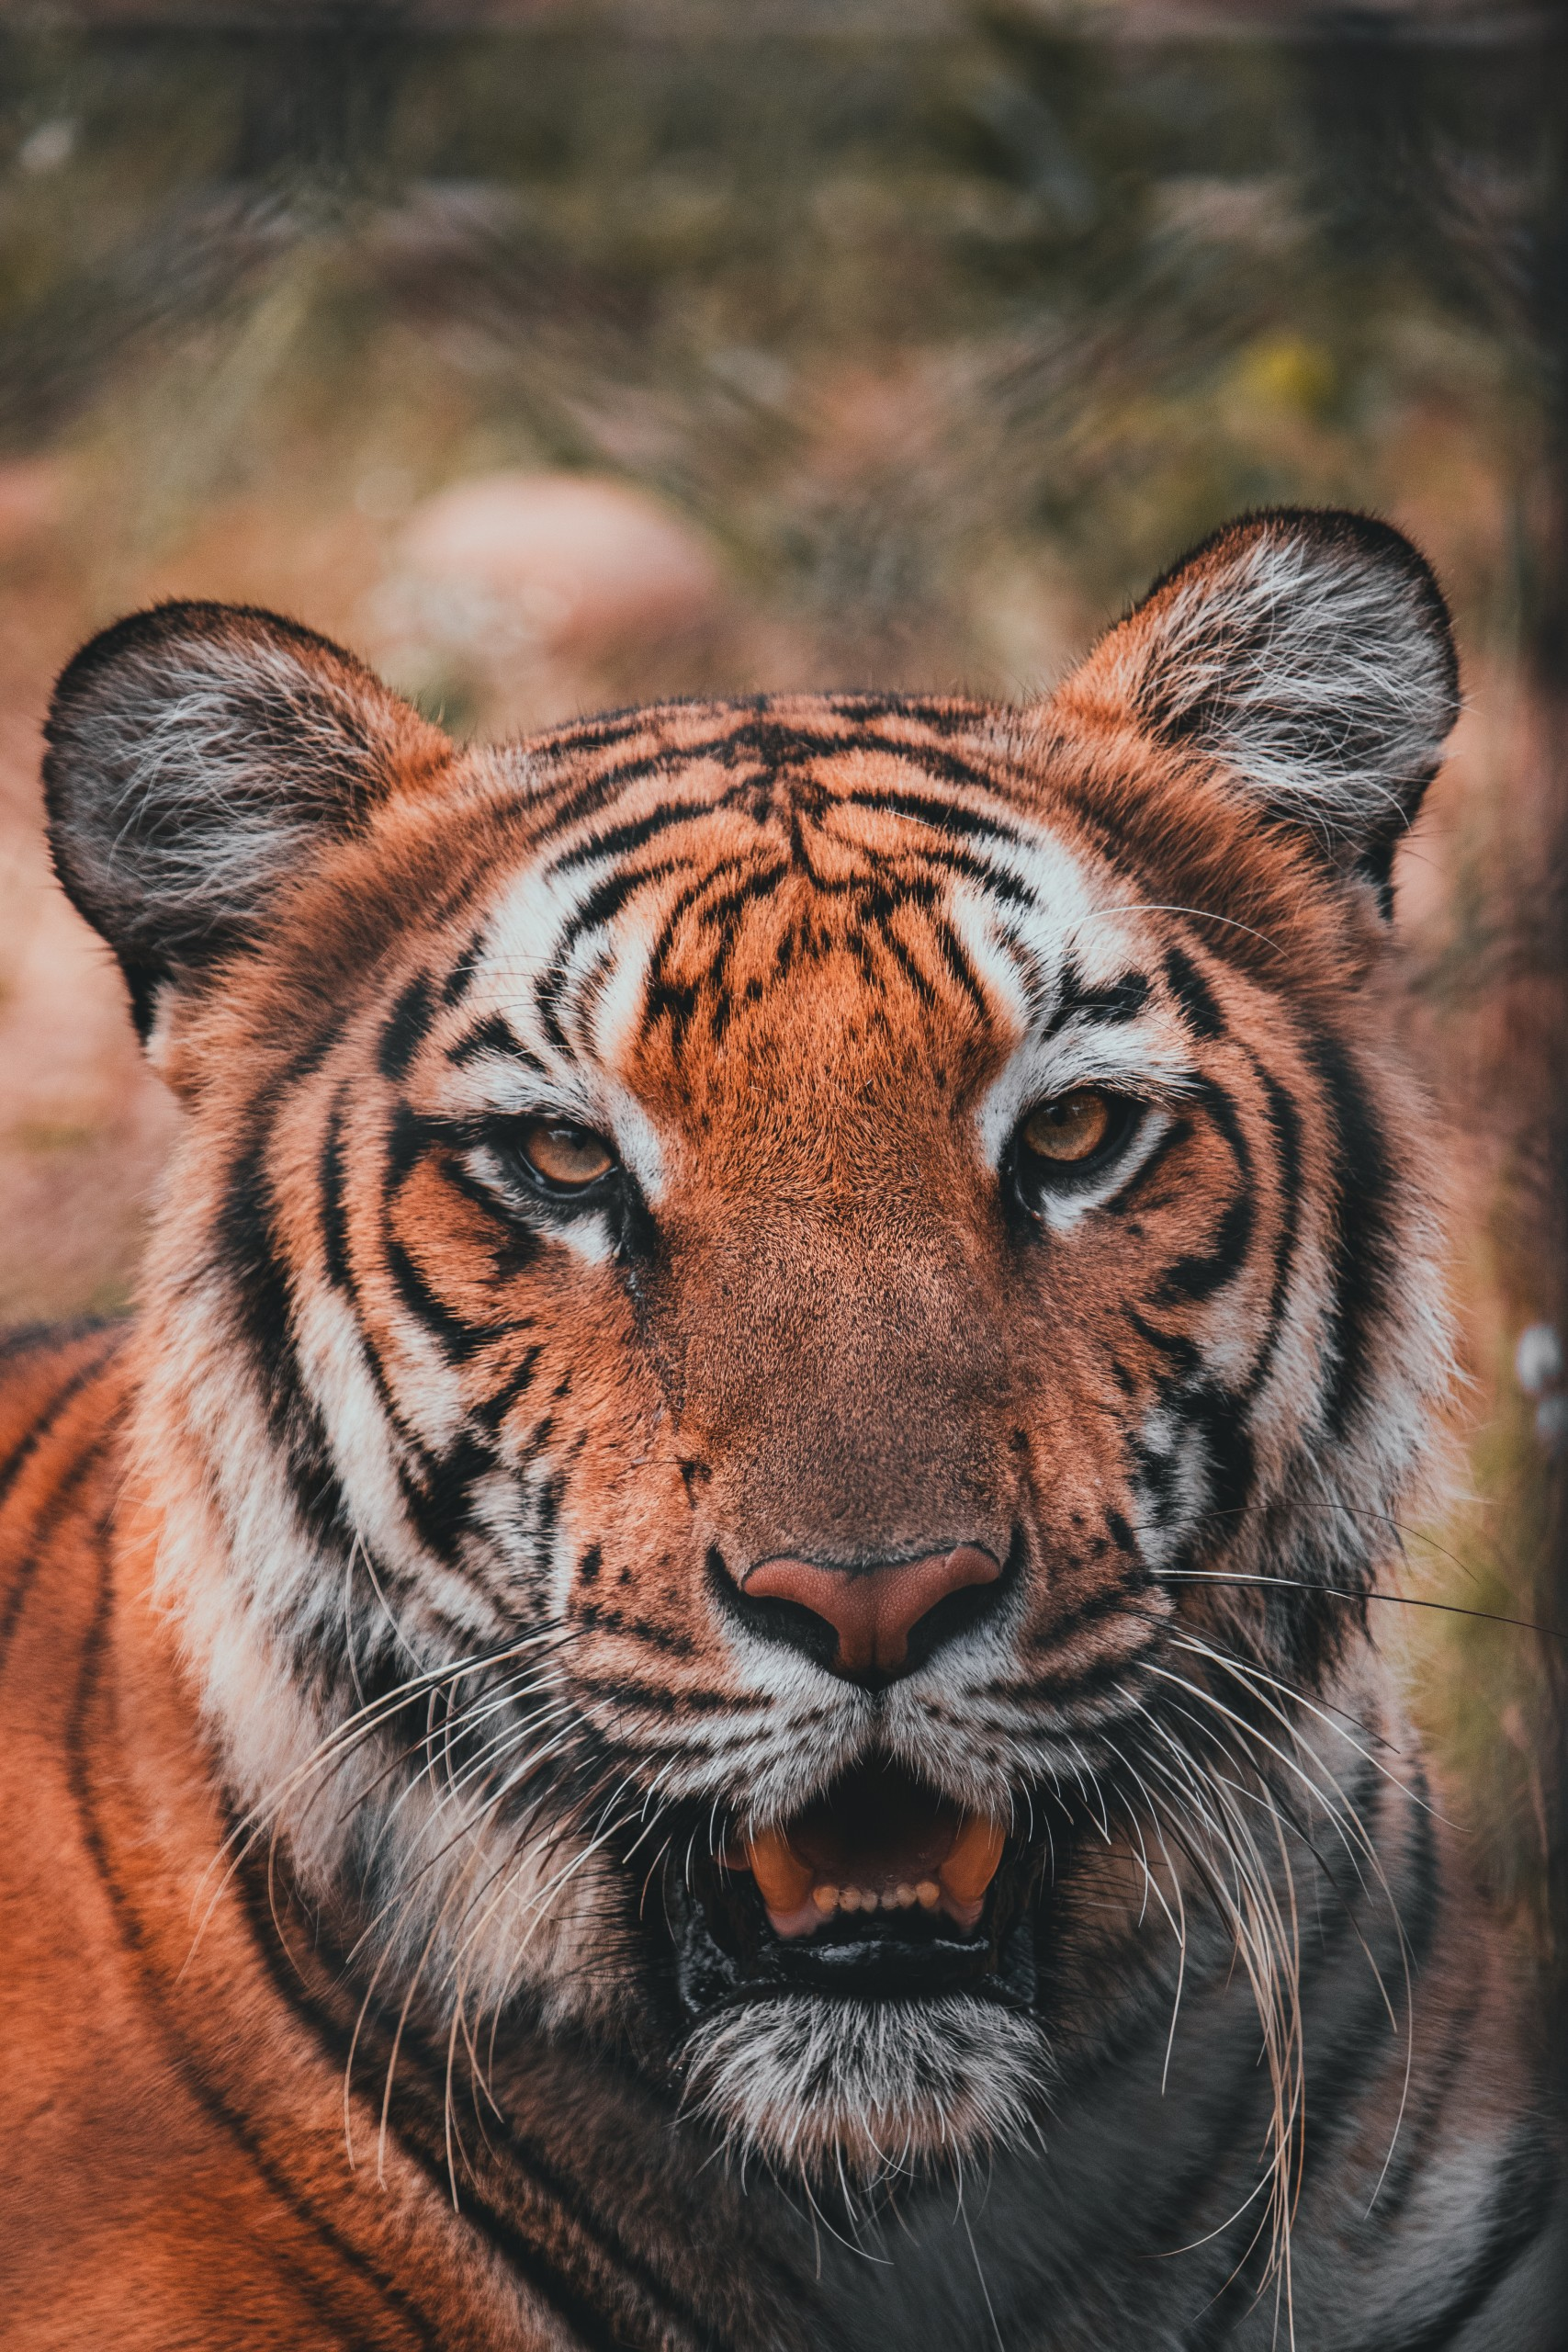 Full Portrait of a tiger